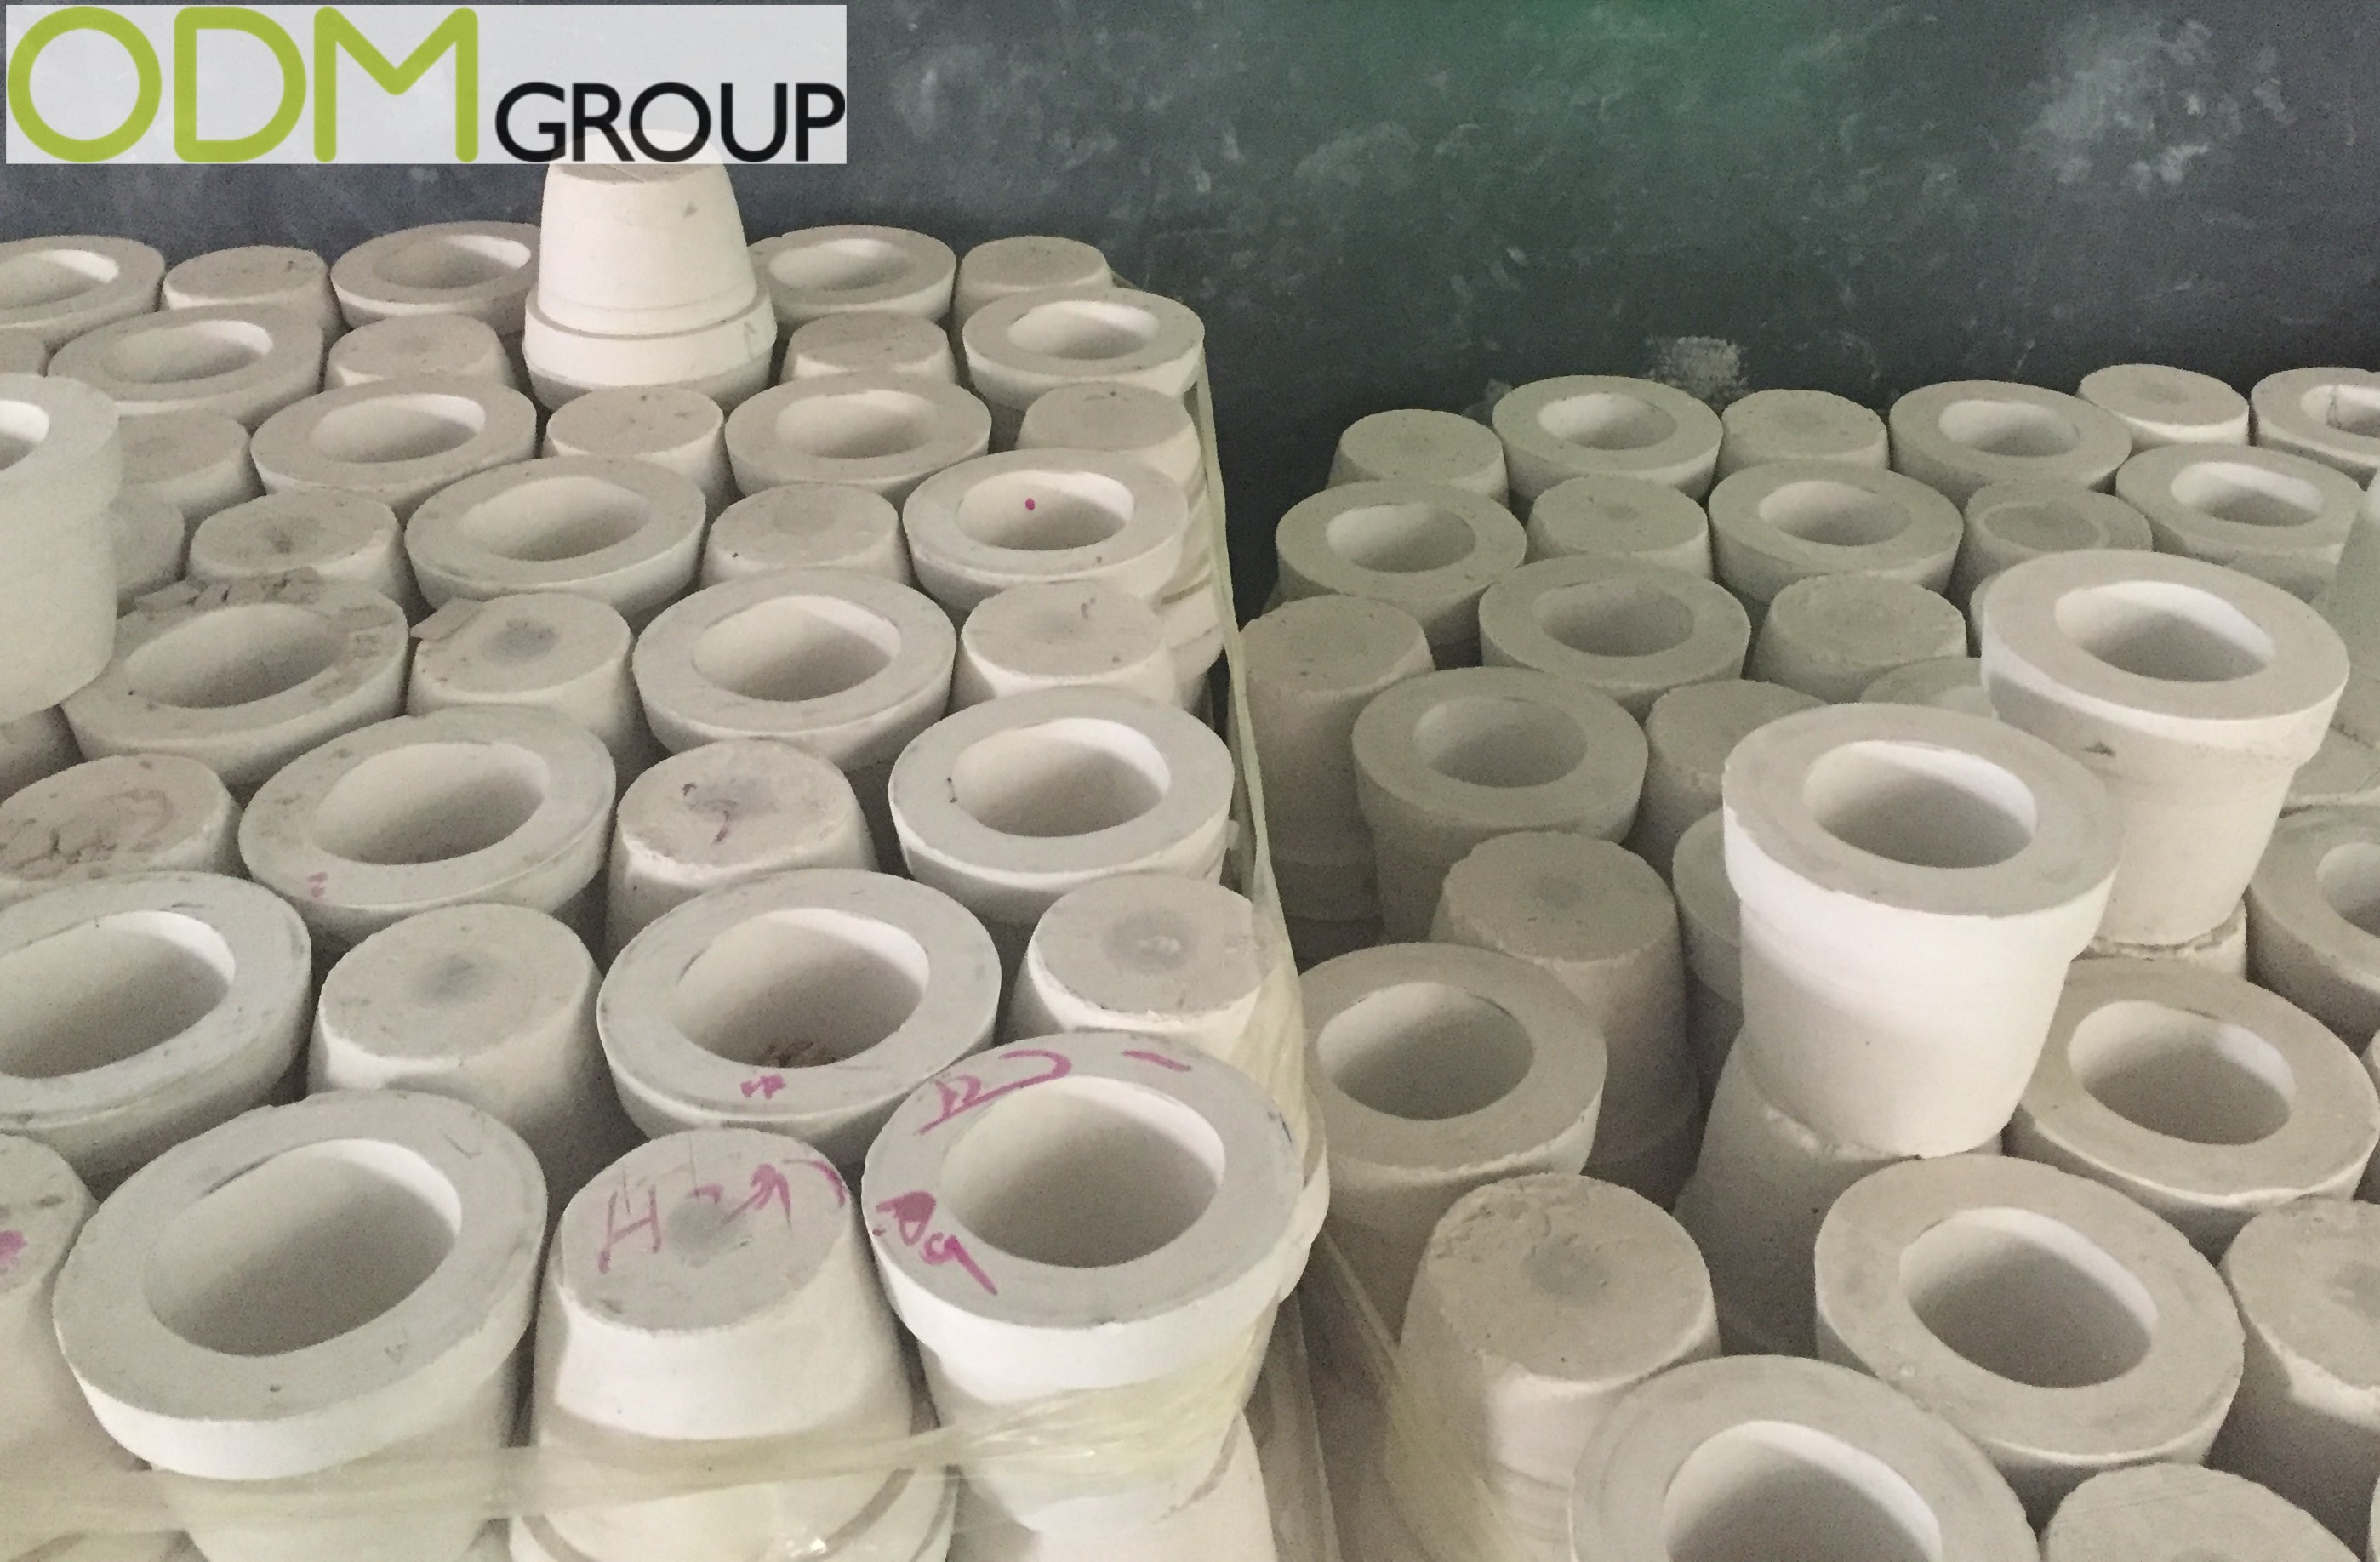 Ceramic Factory Visit - Manufacturing in China